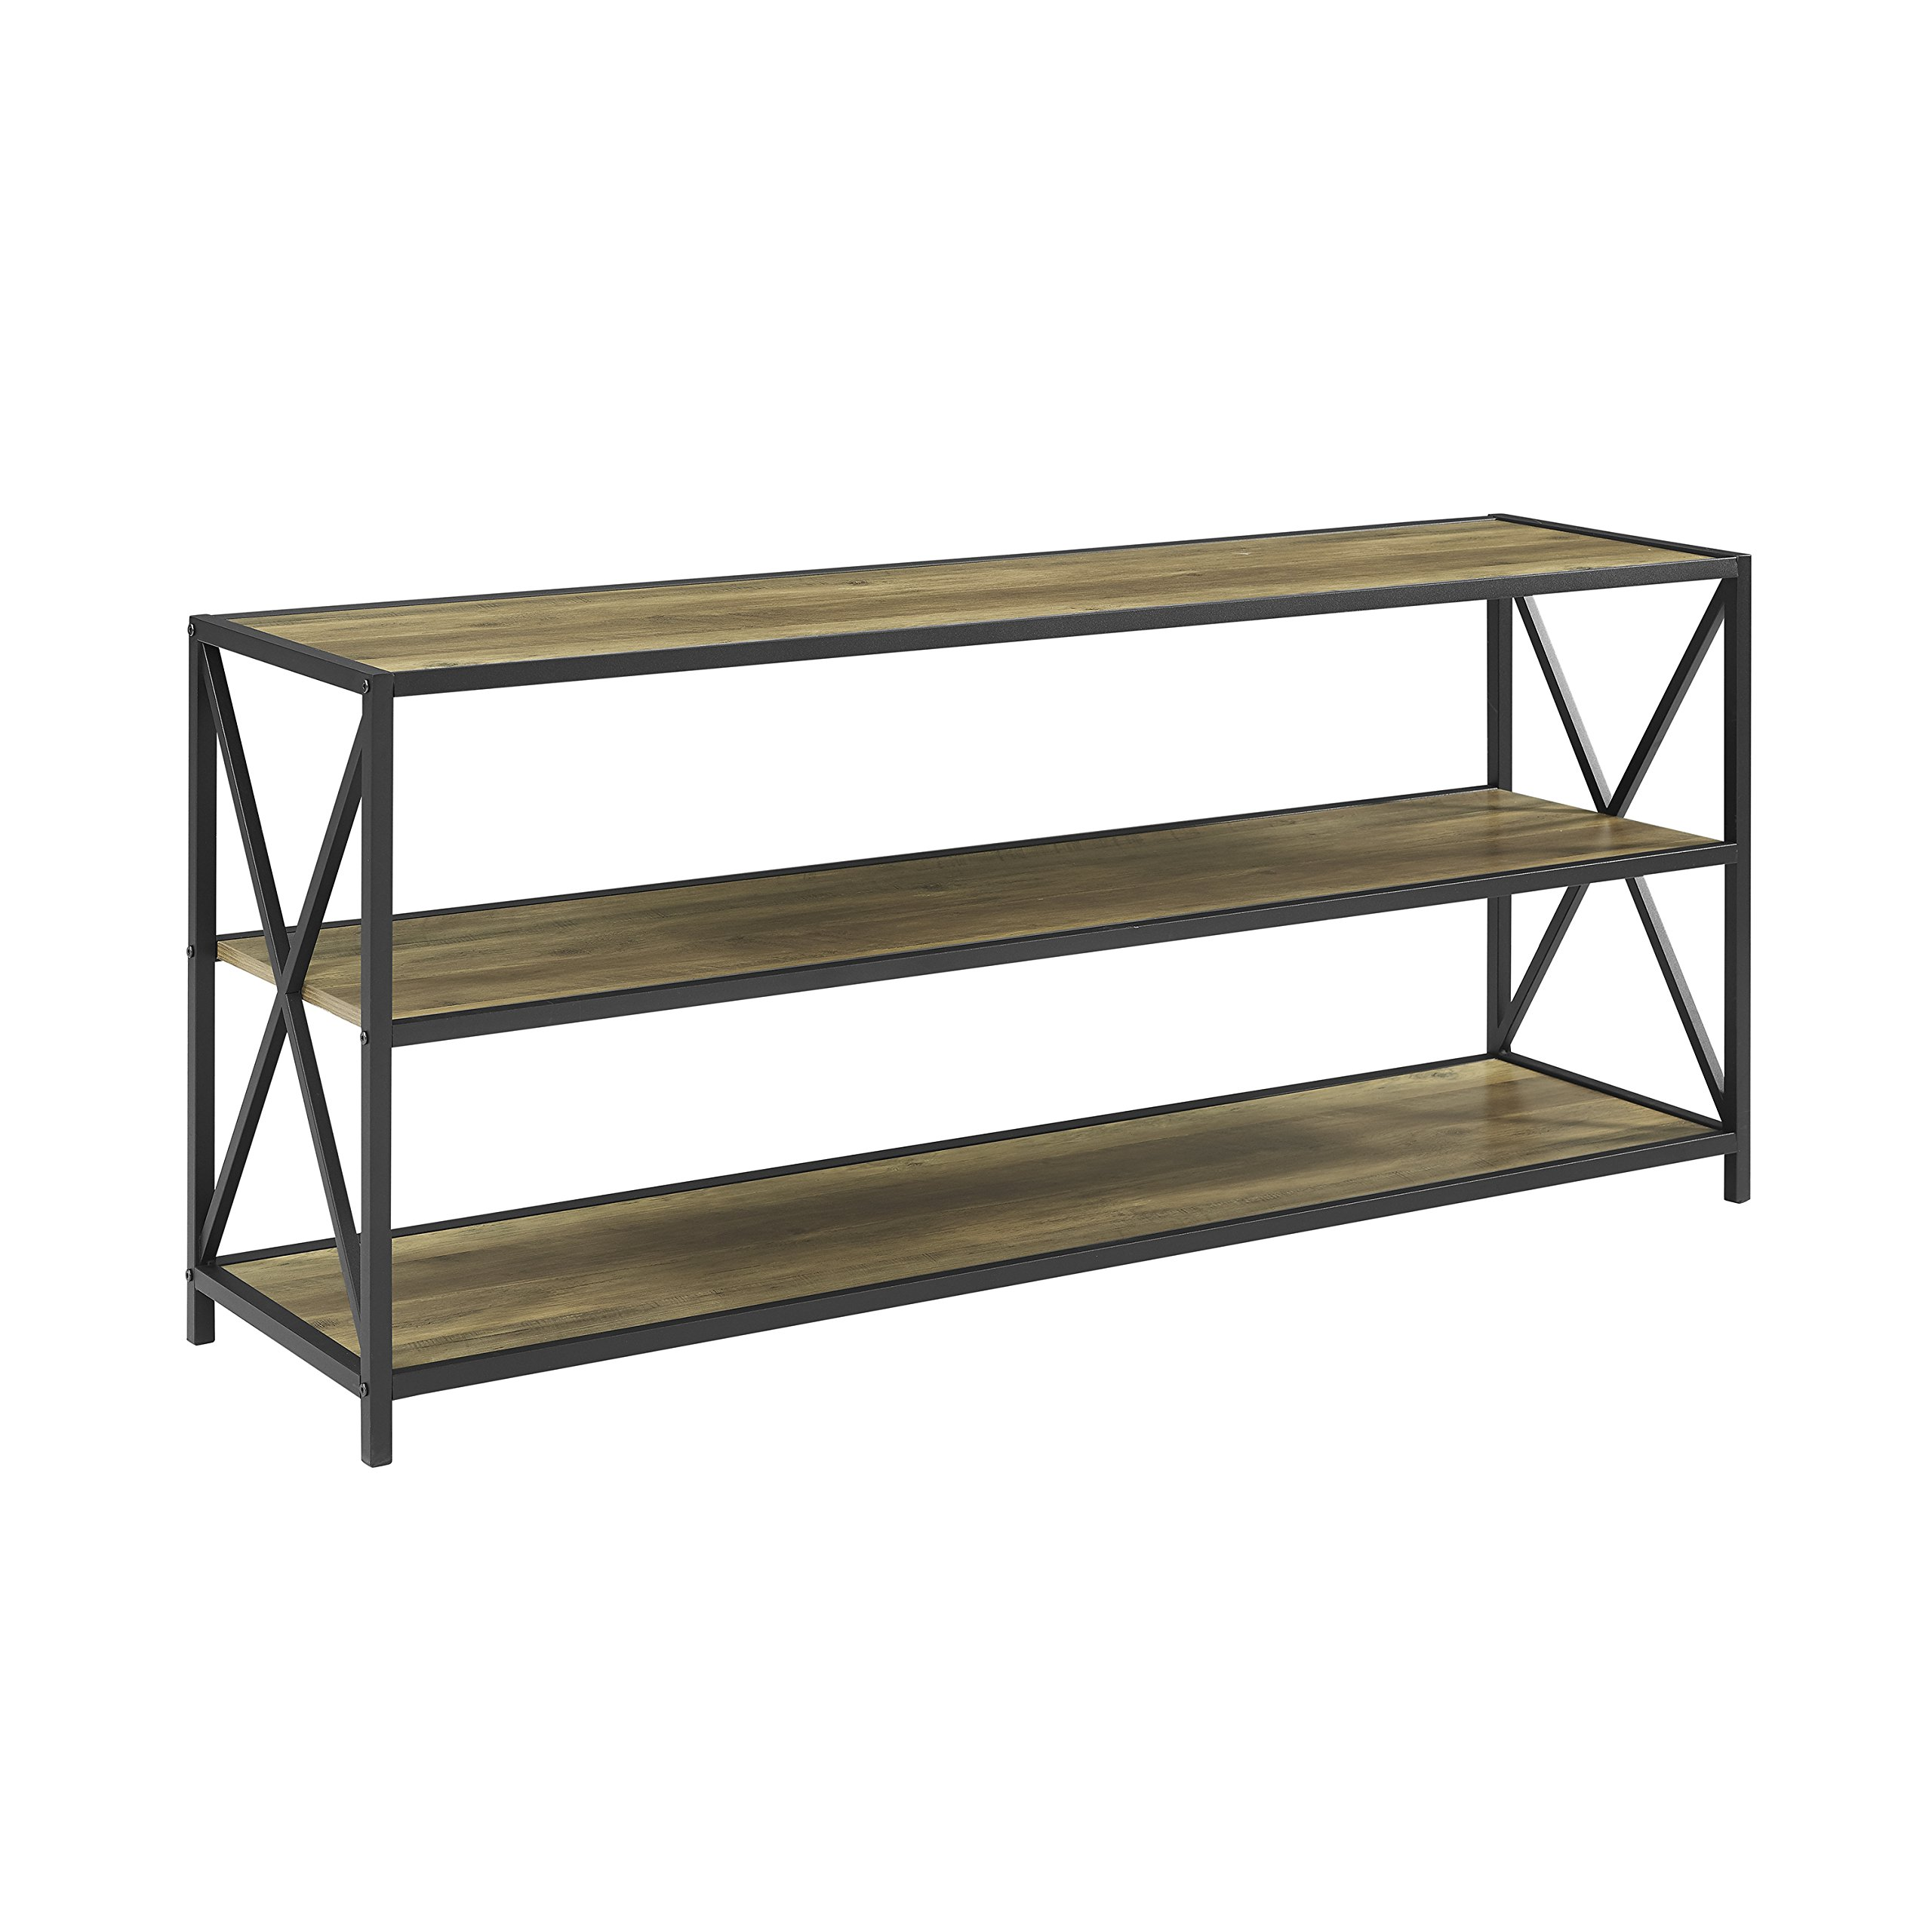 WE Furniture 60'' Wood Tall Entryway Table TV Stand Console 3 Tier Console Table, Rustic Oak and Black Metal Bookshelf Sofa Table for Living Room by WE Furniture